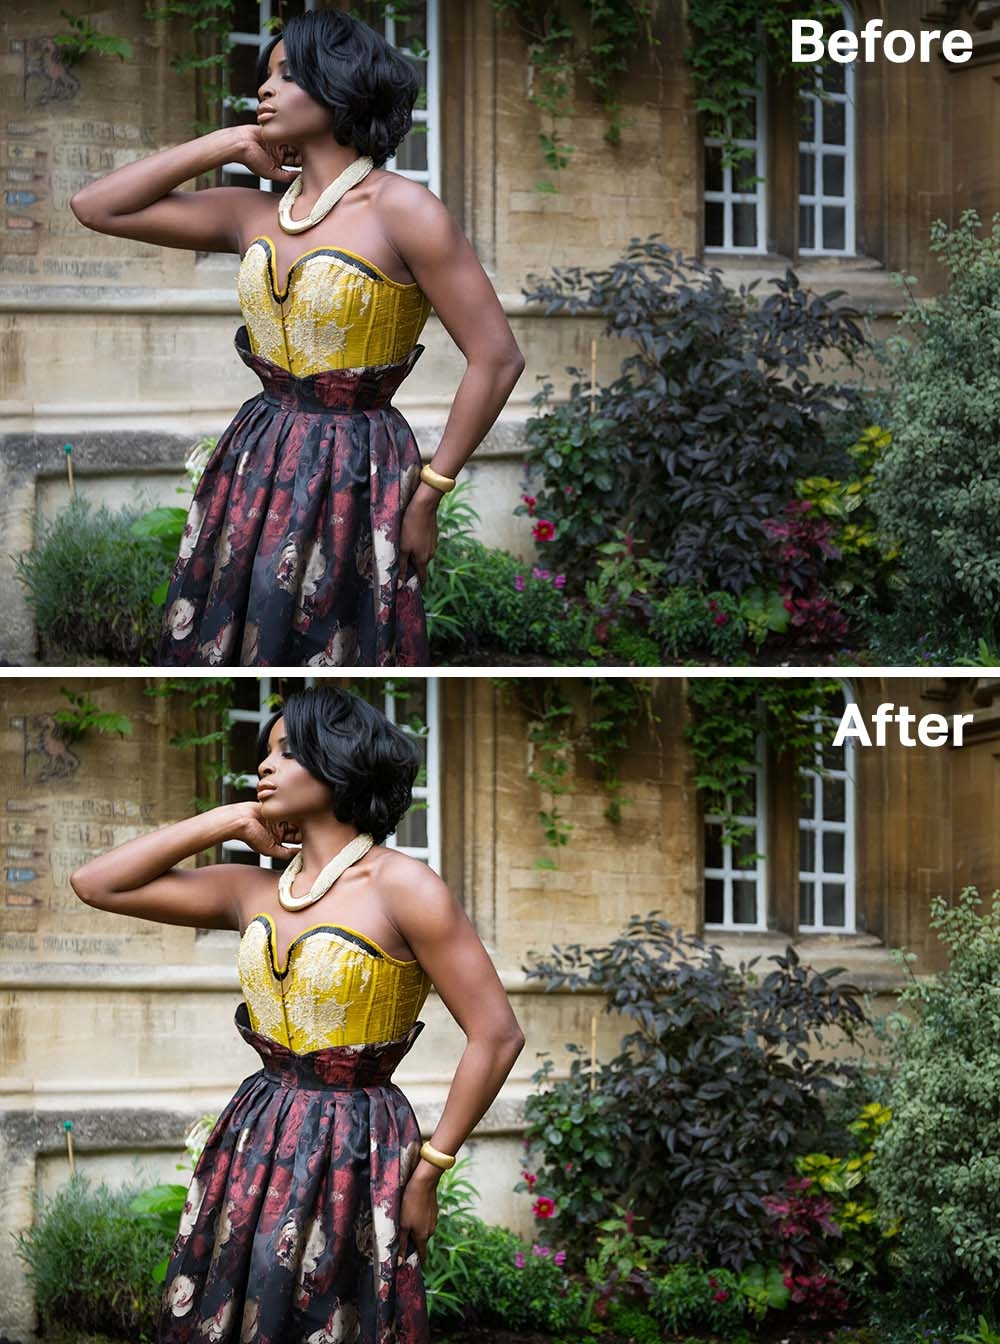 How-to-brighten-a-photo-in-Photoshop